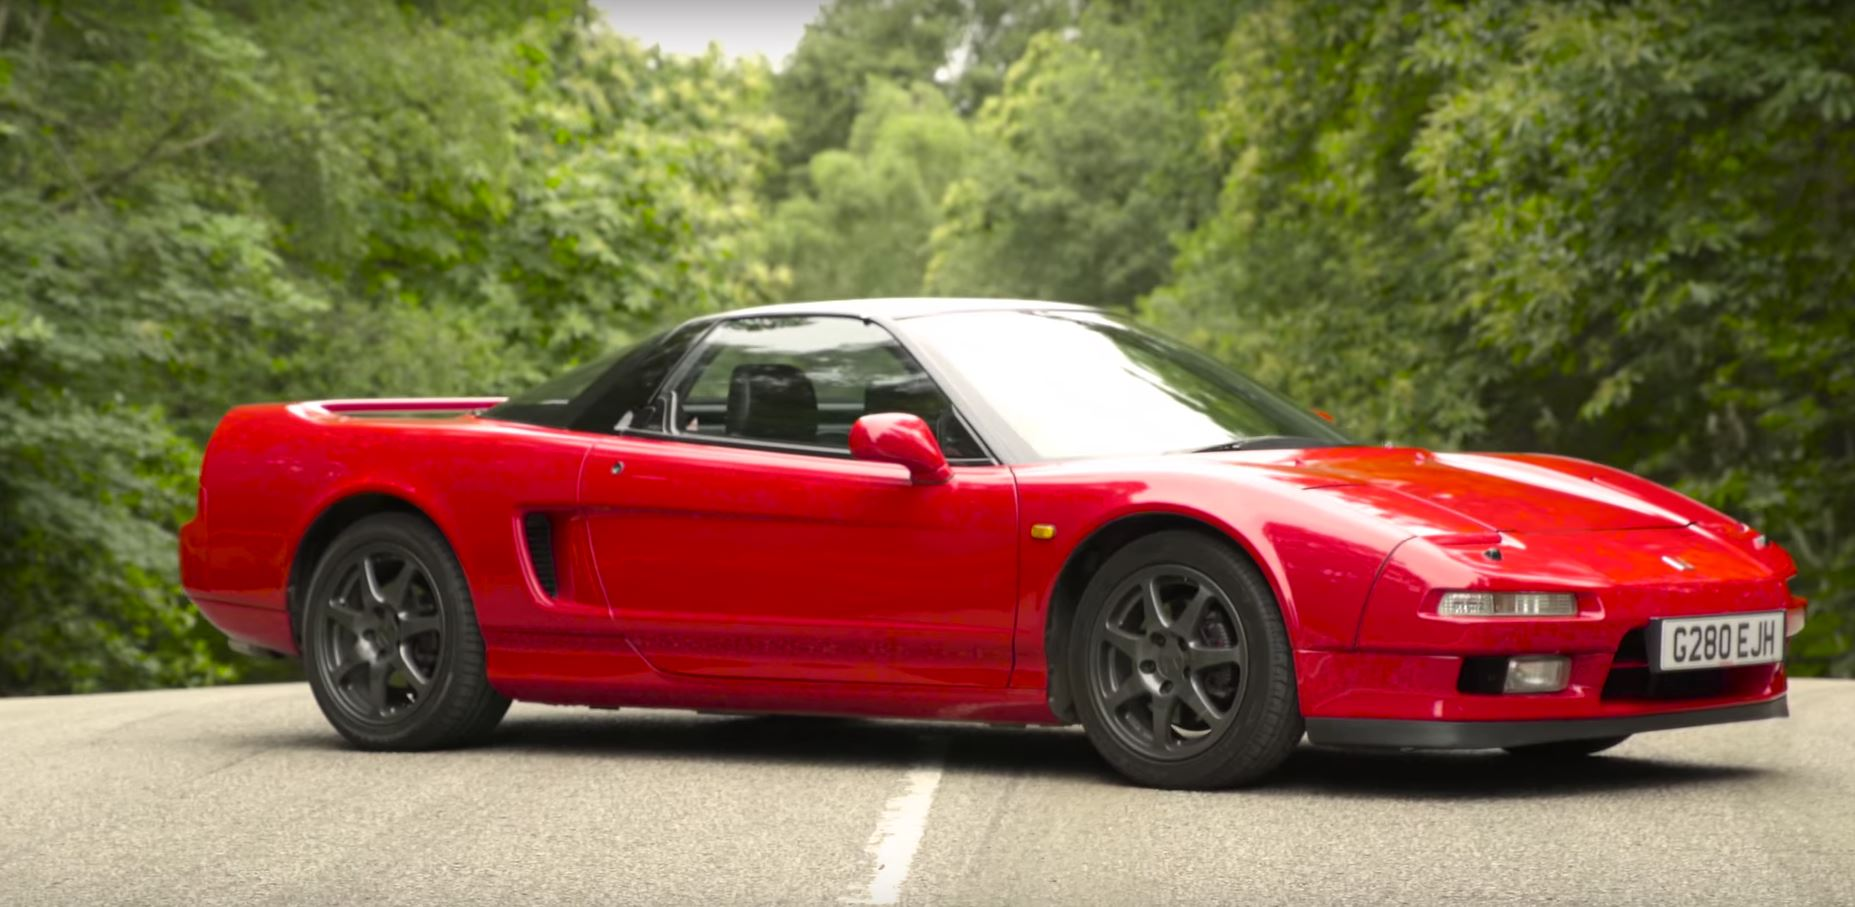 old vs new honda nsx review comes with matching 360 degree footage autoevolution. Black Bedroom Furniture Sets. Home Design Ideas